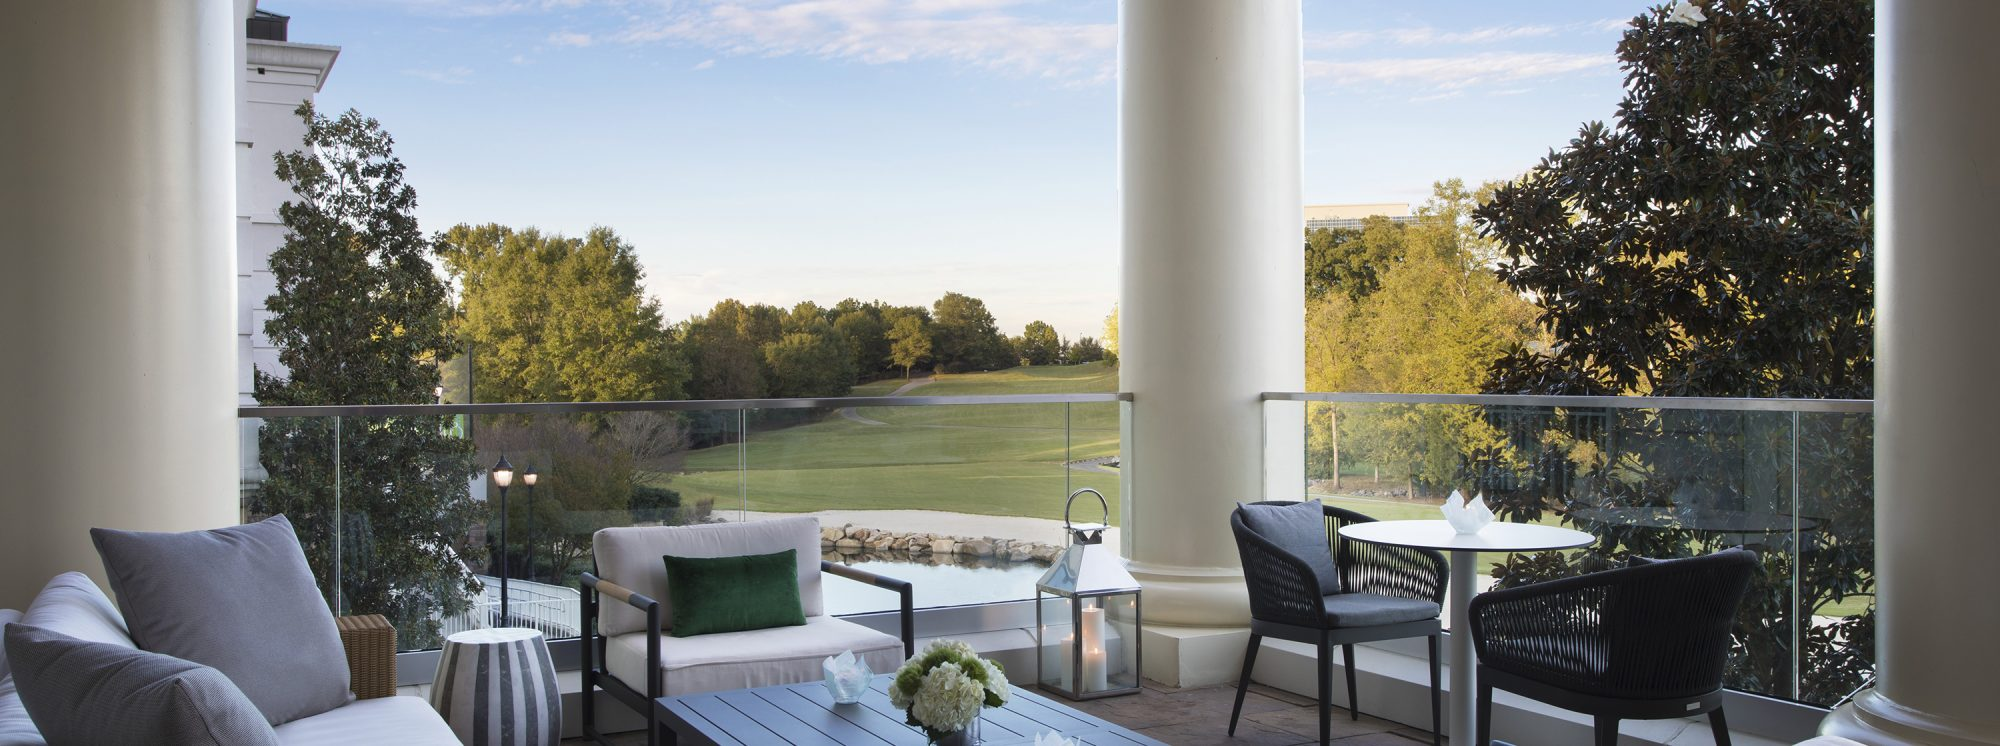 The Ryal Balcony at The Ballantyne, Charlotte